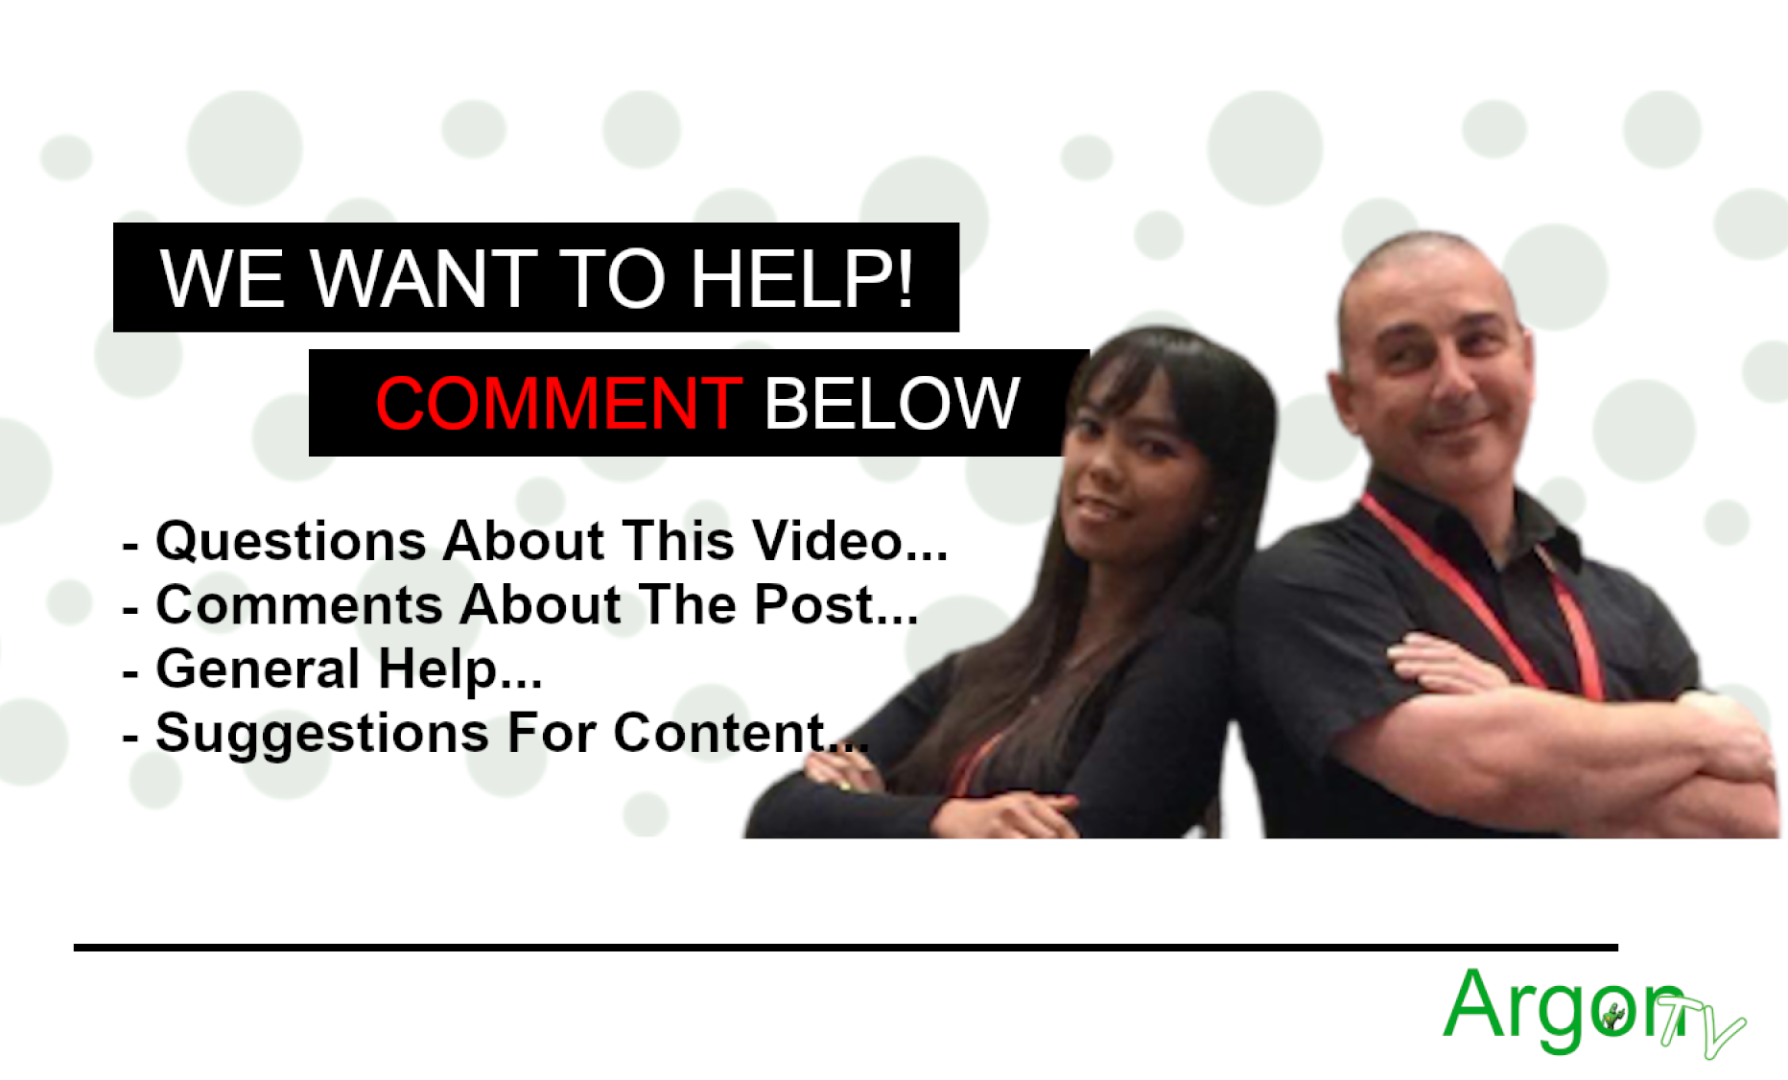 We Want To Help At ArgonTV